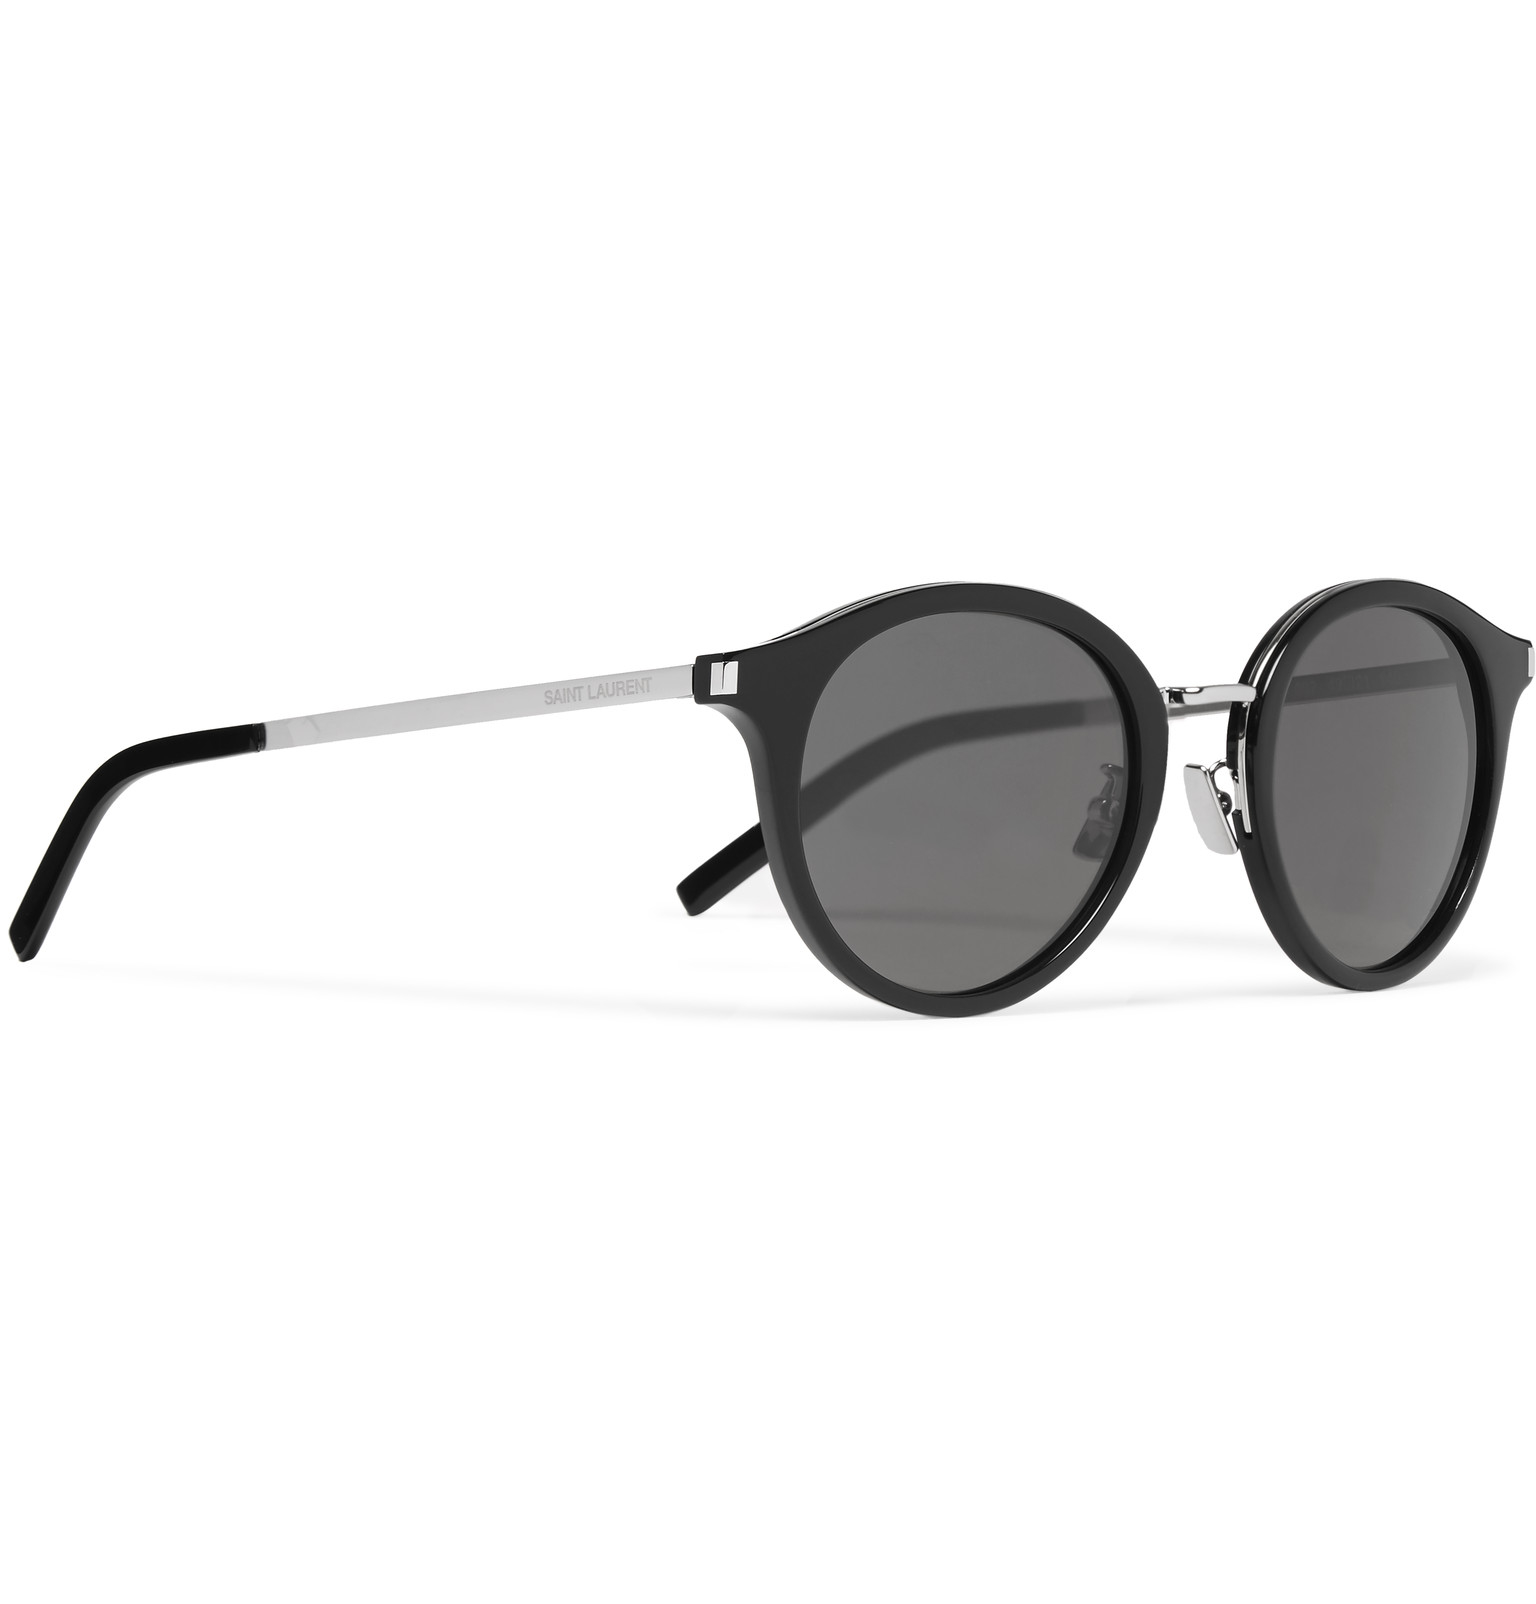 f96257a9c15 Saint Laurent Round-frame Acetate And Silver-tone Sunglasses in ...